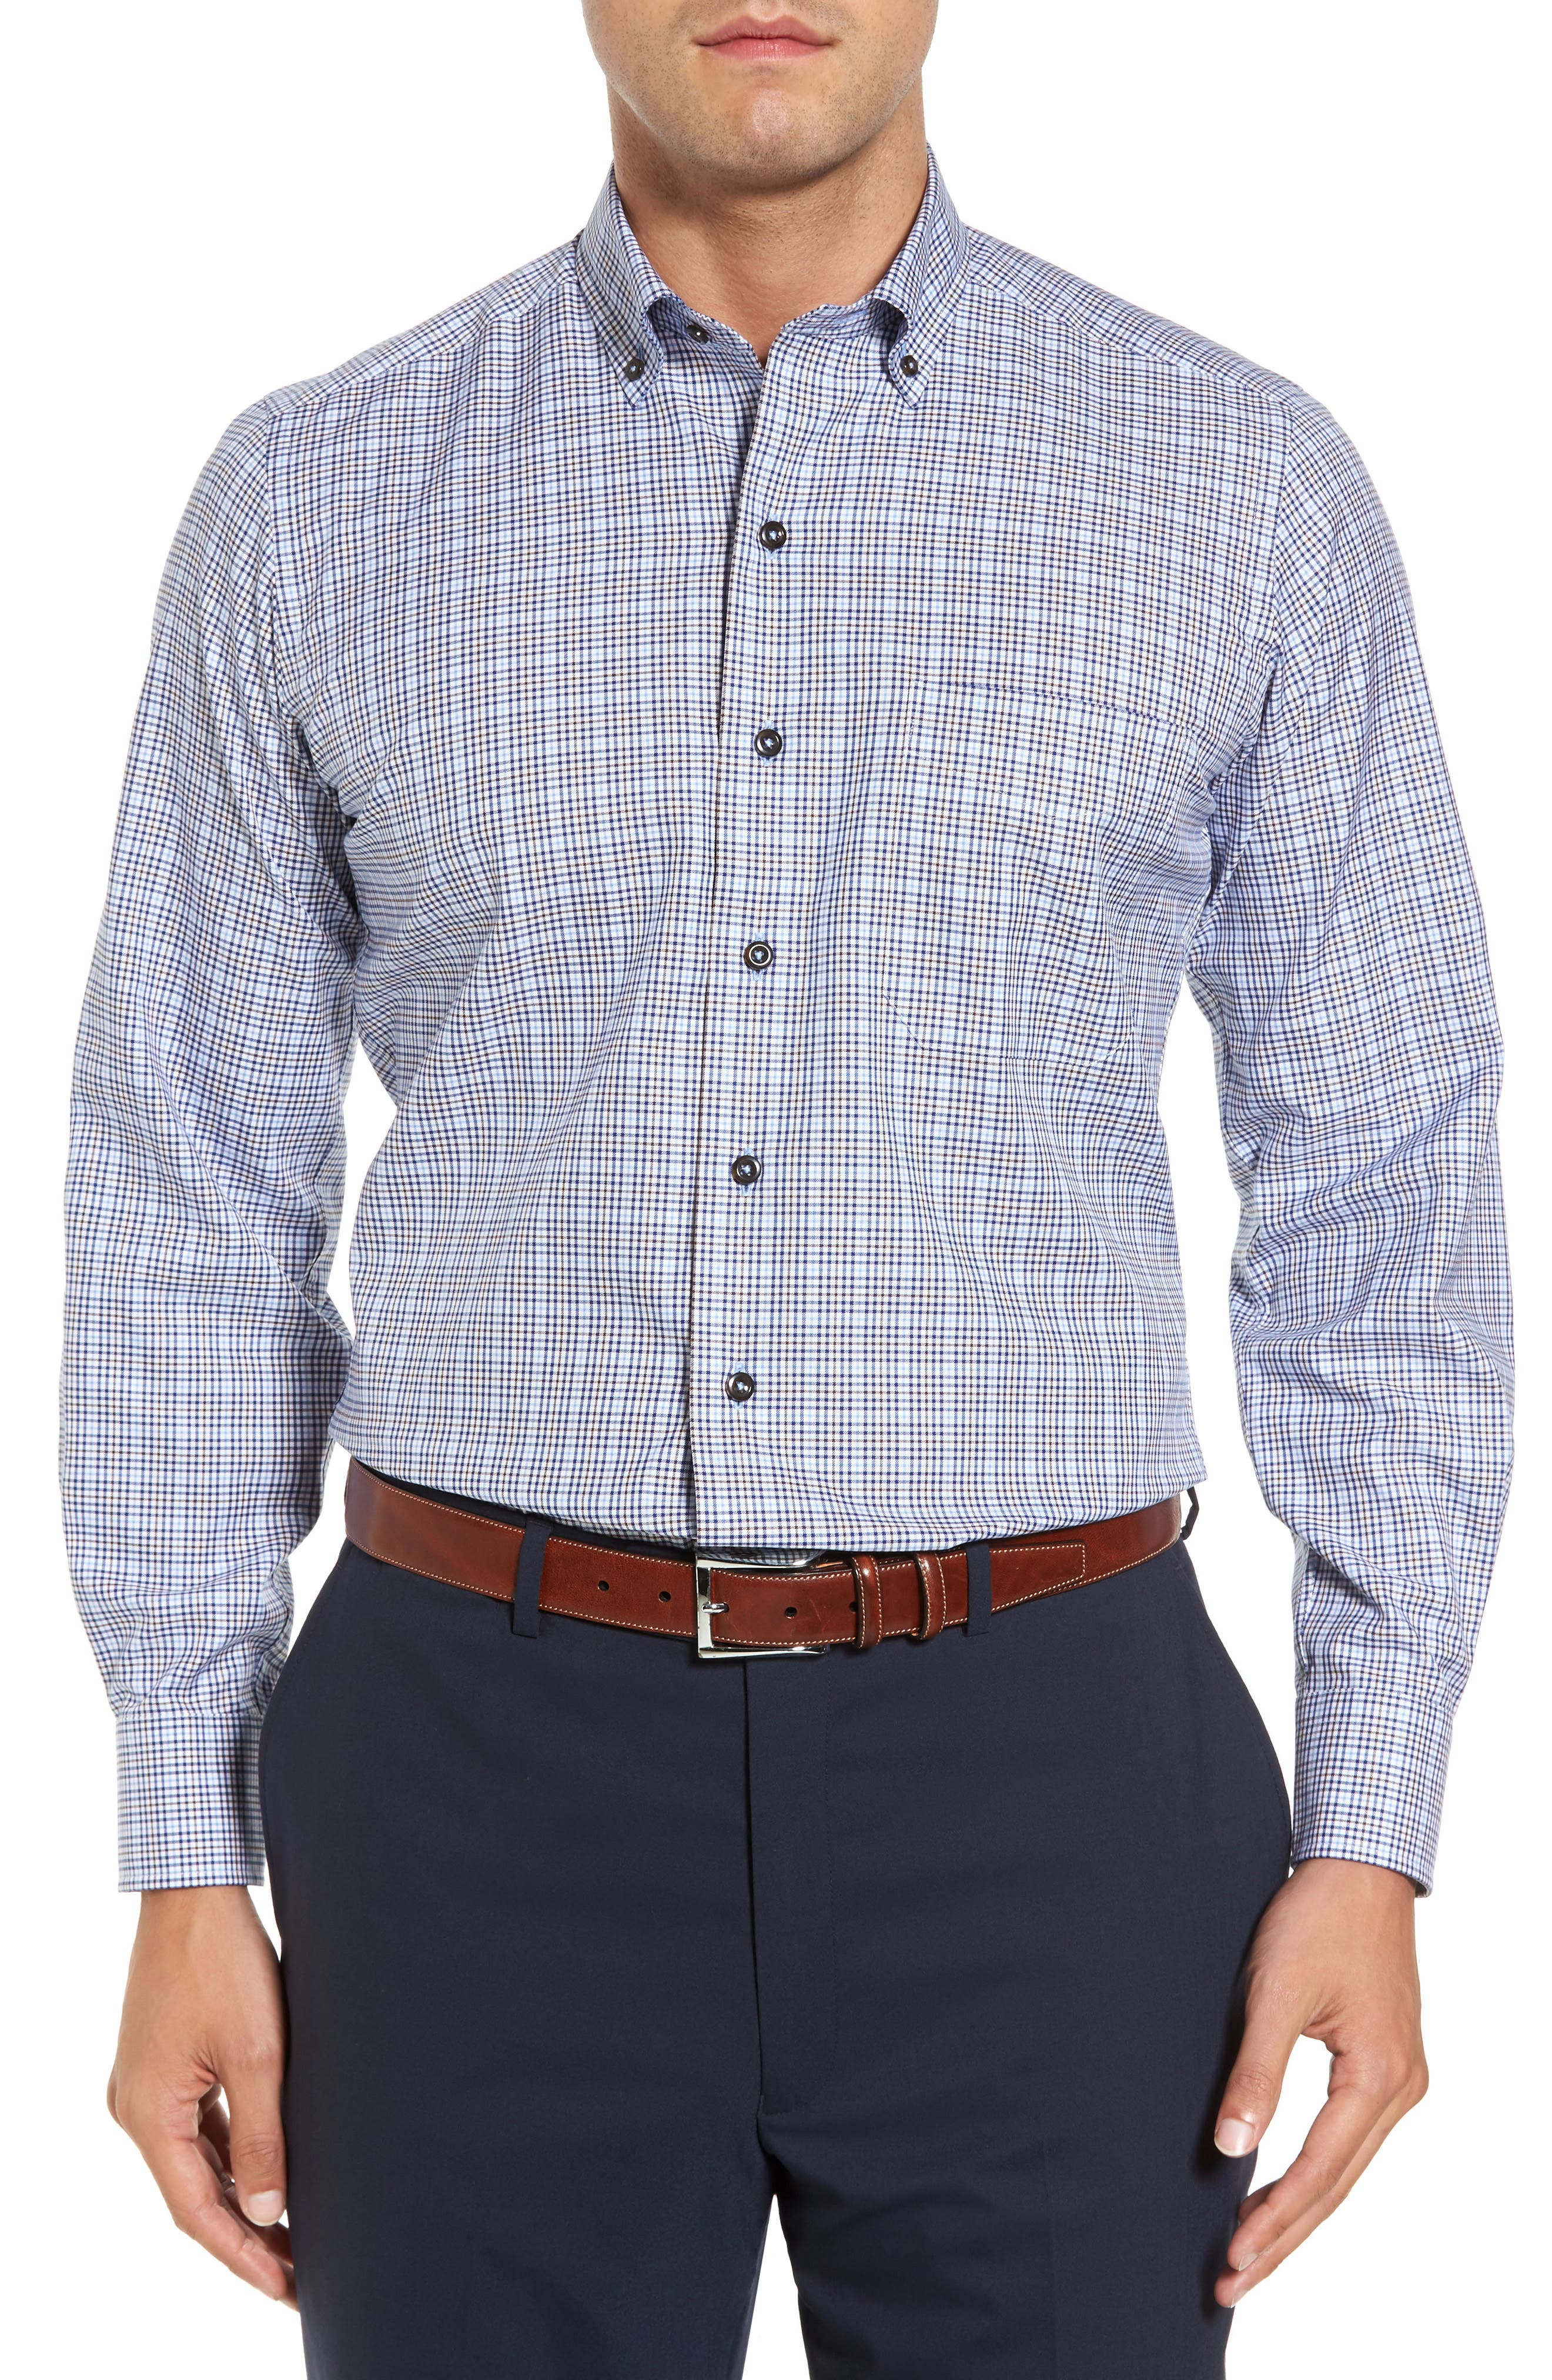 Alternate Image 1 Selected - David Donahue Regular Fit Plaid Sport Shirt